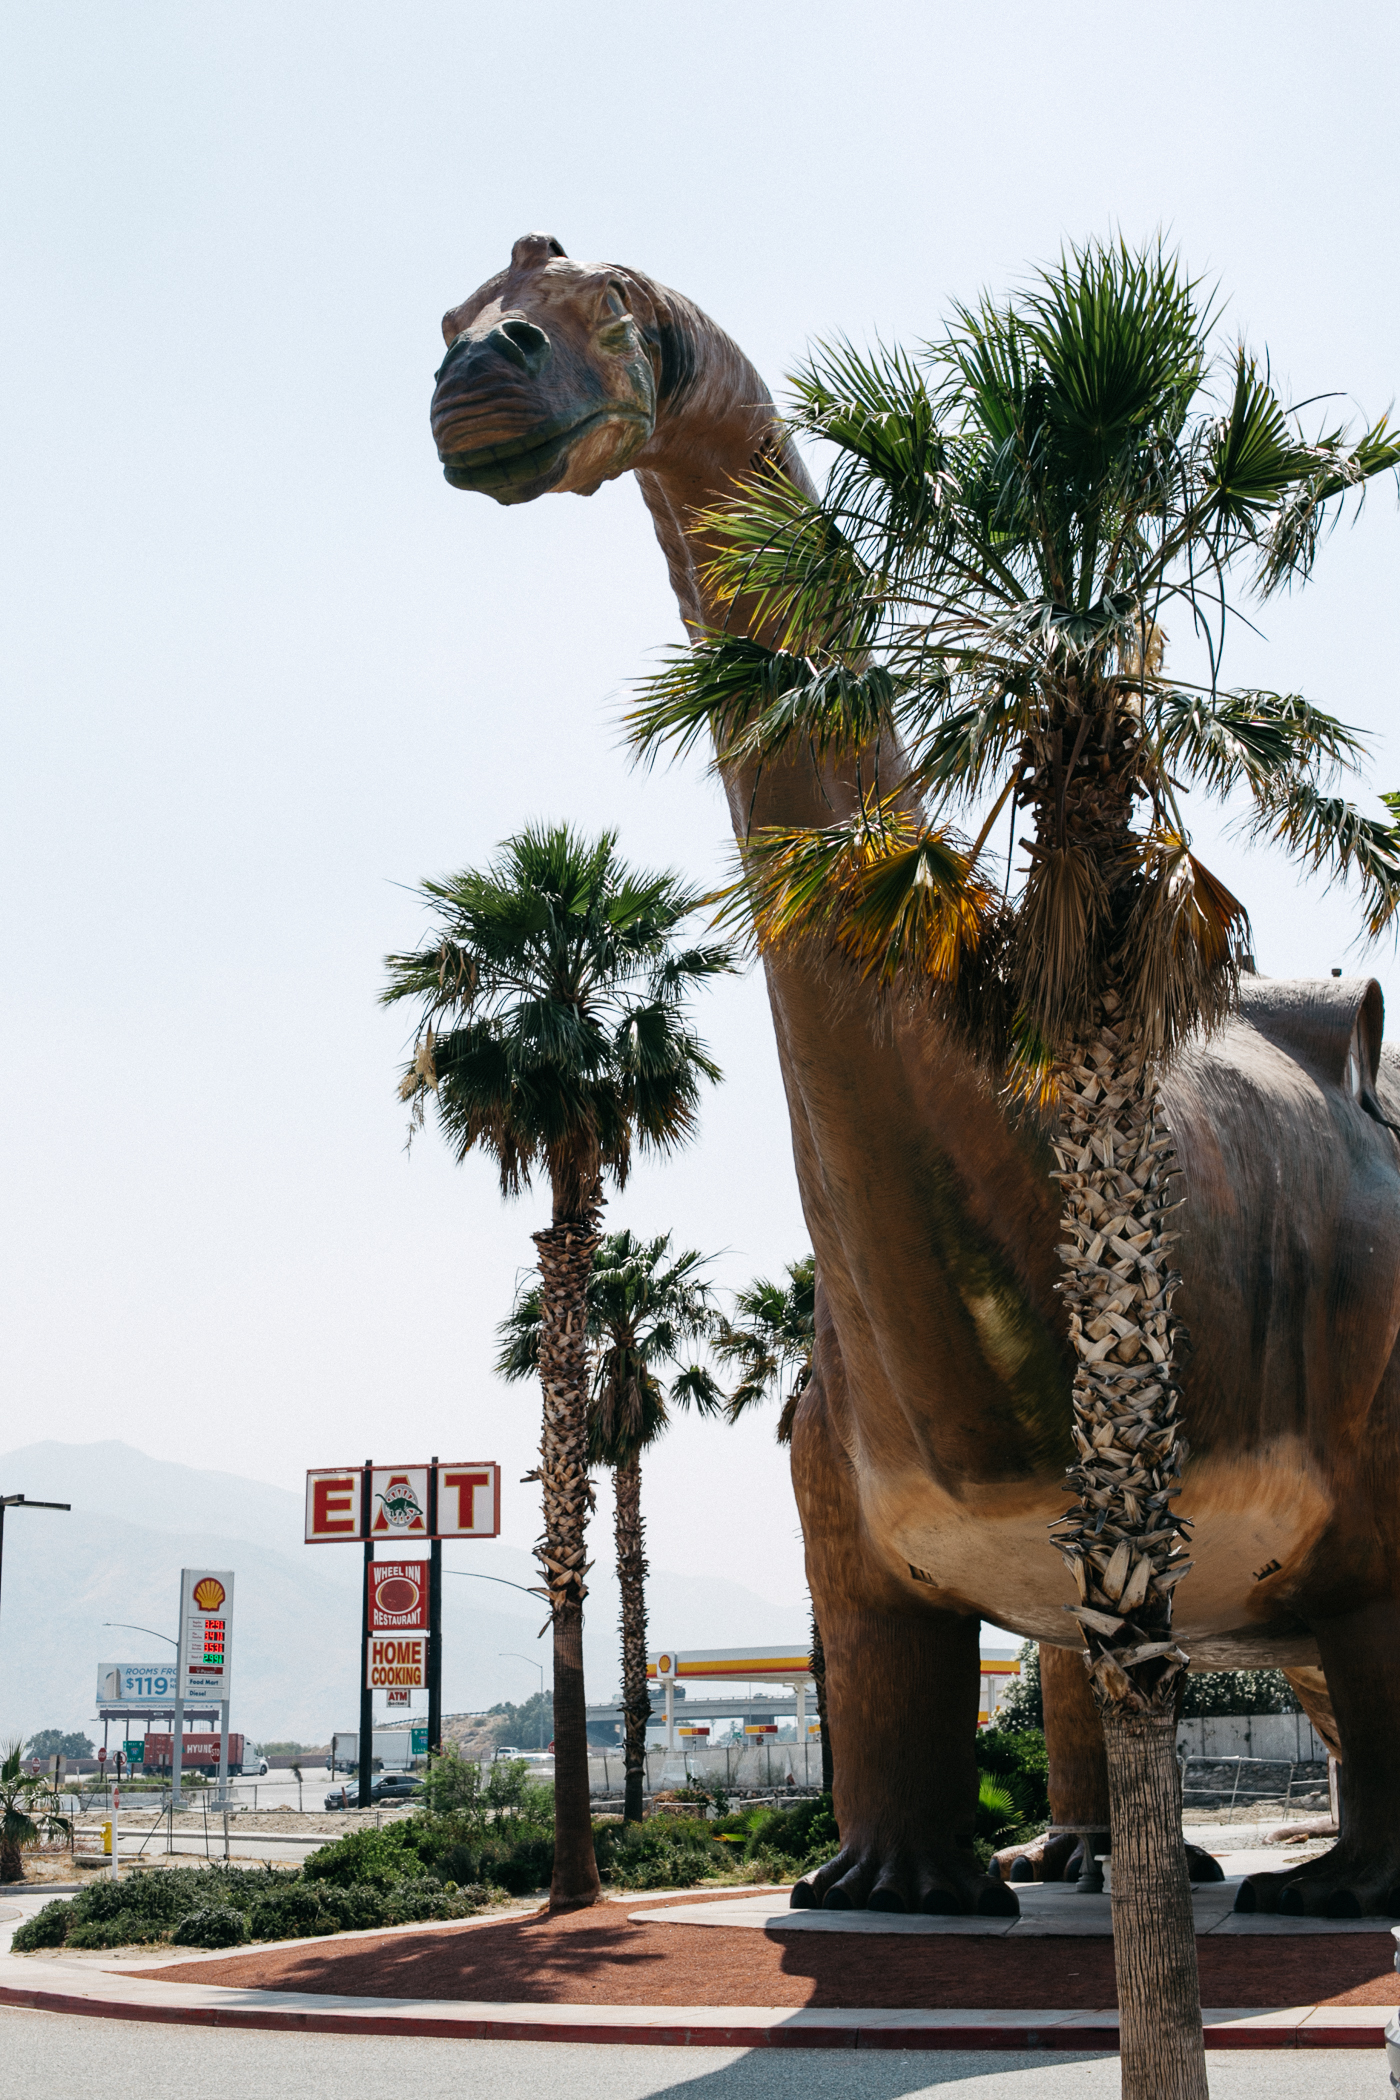 Things To Do In Palm Springs: Cabazon Dinosaurs | Bikinis & Passports